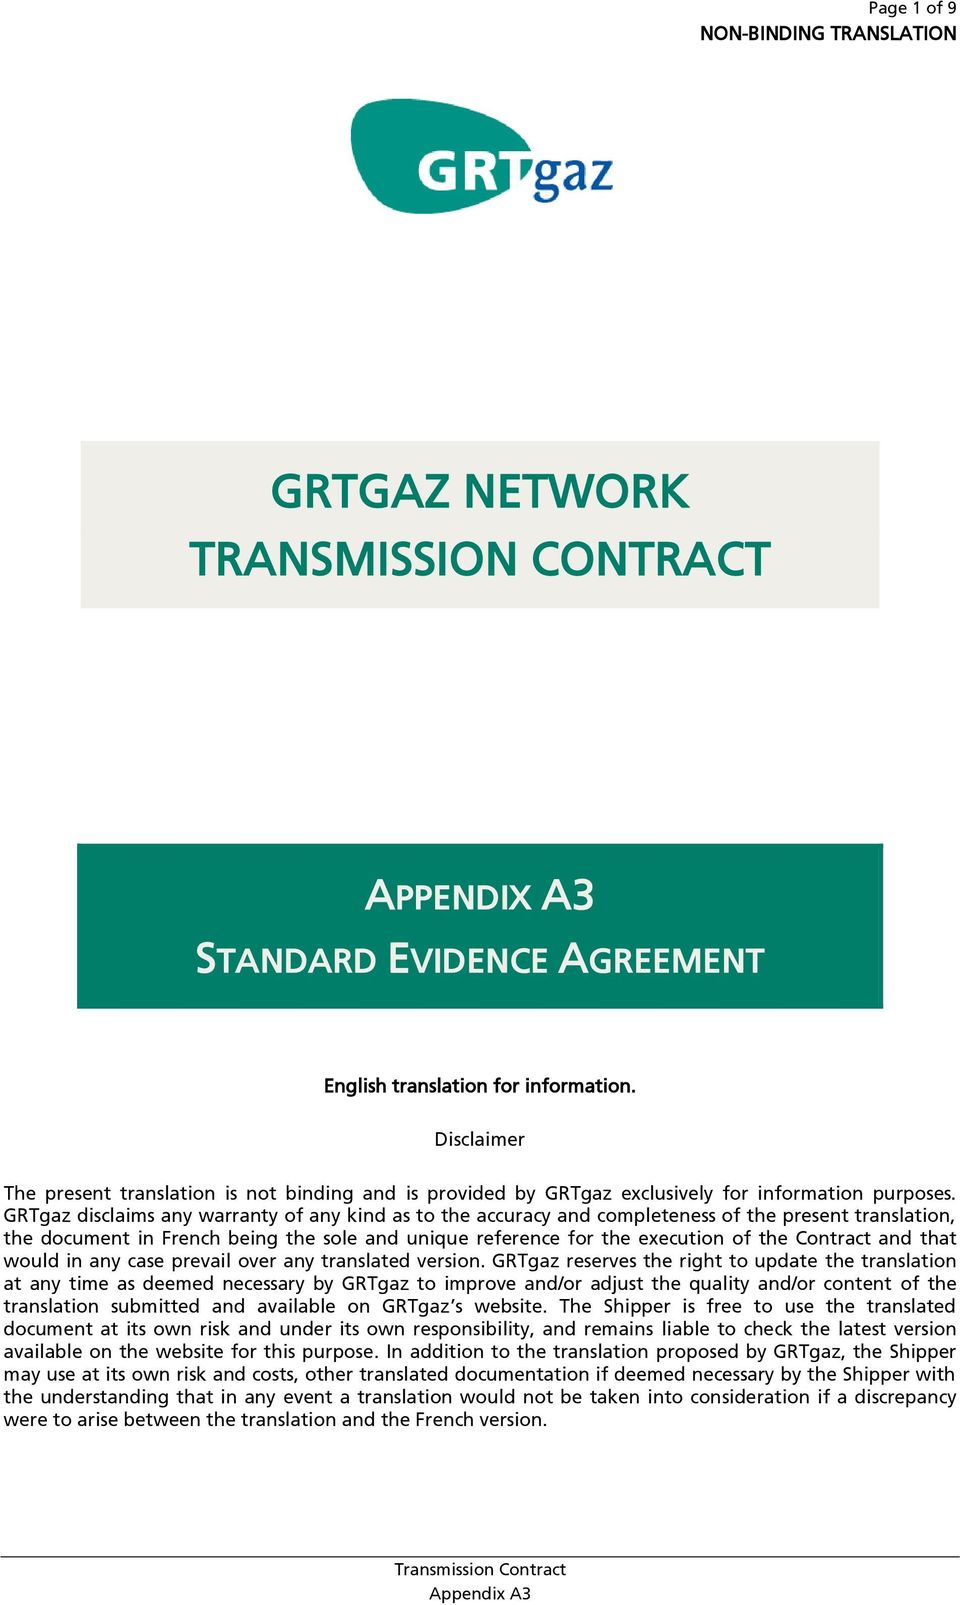 GRTgaz disclaims any warranty of any kind as to the accuracy and completeness of the present translation, the document in French being the sole and unique reference for the execution of the Contract